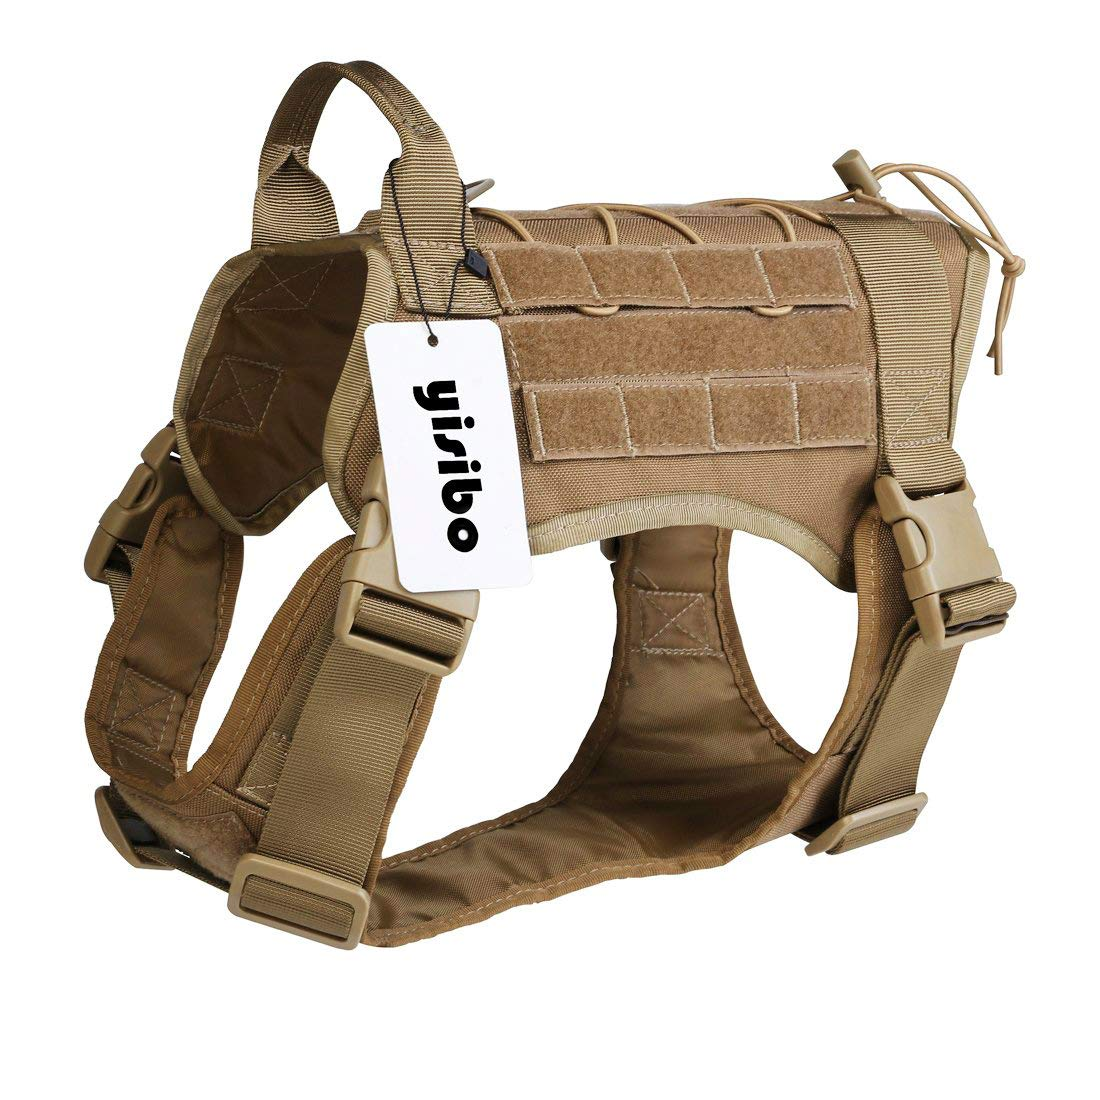 yisibo Comfortable Molle Tactical Dog Harness Military K9 Working Water-Resistant Hiking Dog Vest with Handle,Large (27.5''-34.5'' Chest Girth),Coyote Brown